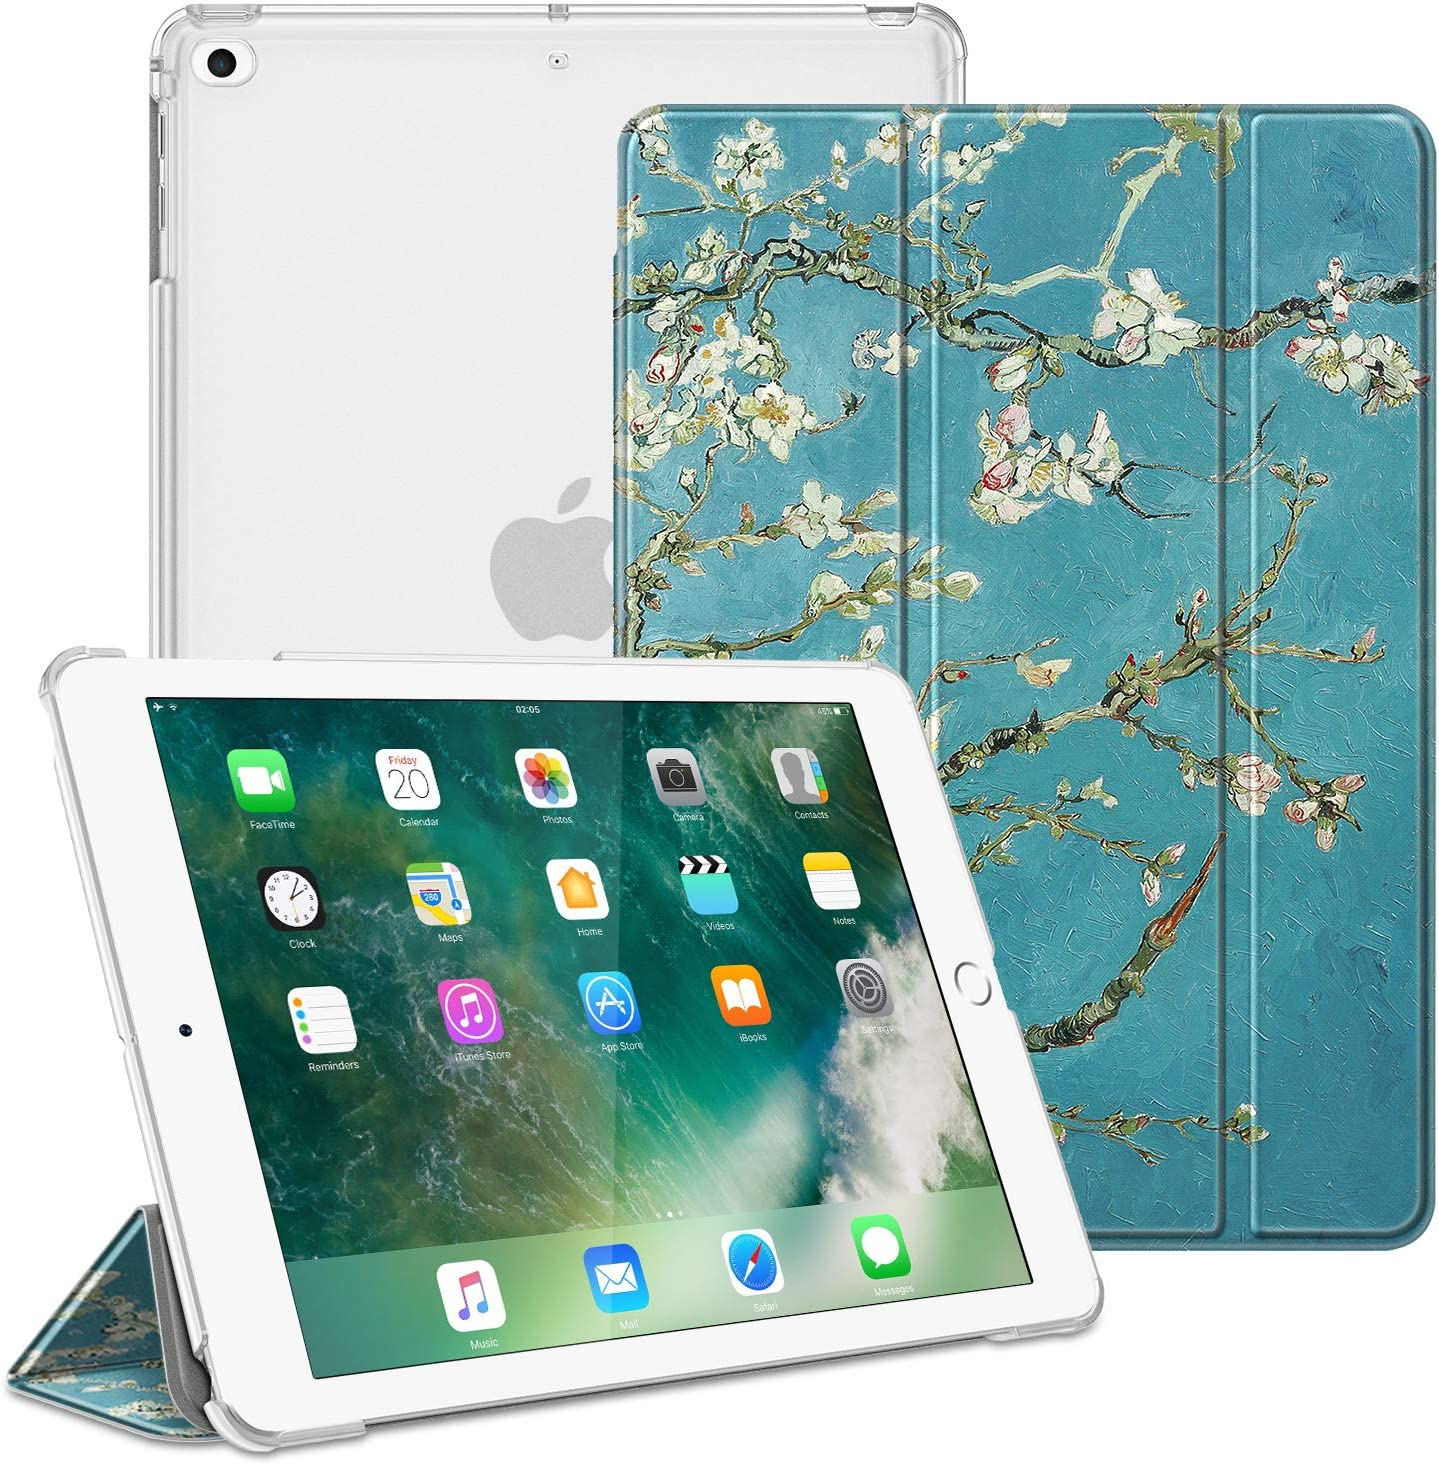 Fintie Case for iPad 9.7 2018/2017, iPad Air 2, iPad Air - Lightweight Slim Shell Cover with Translucent Frosted Back Protector Supports Auto Wake/Sleep for iPad 6th / 5th Gen, Blossom